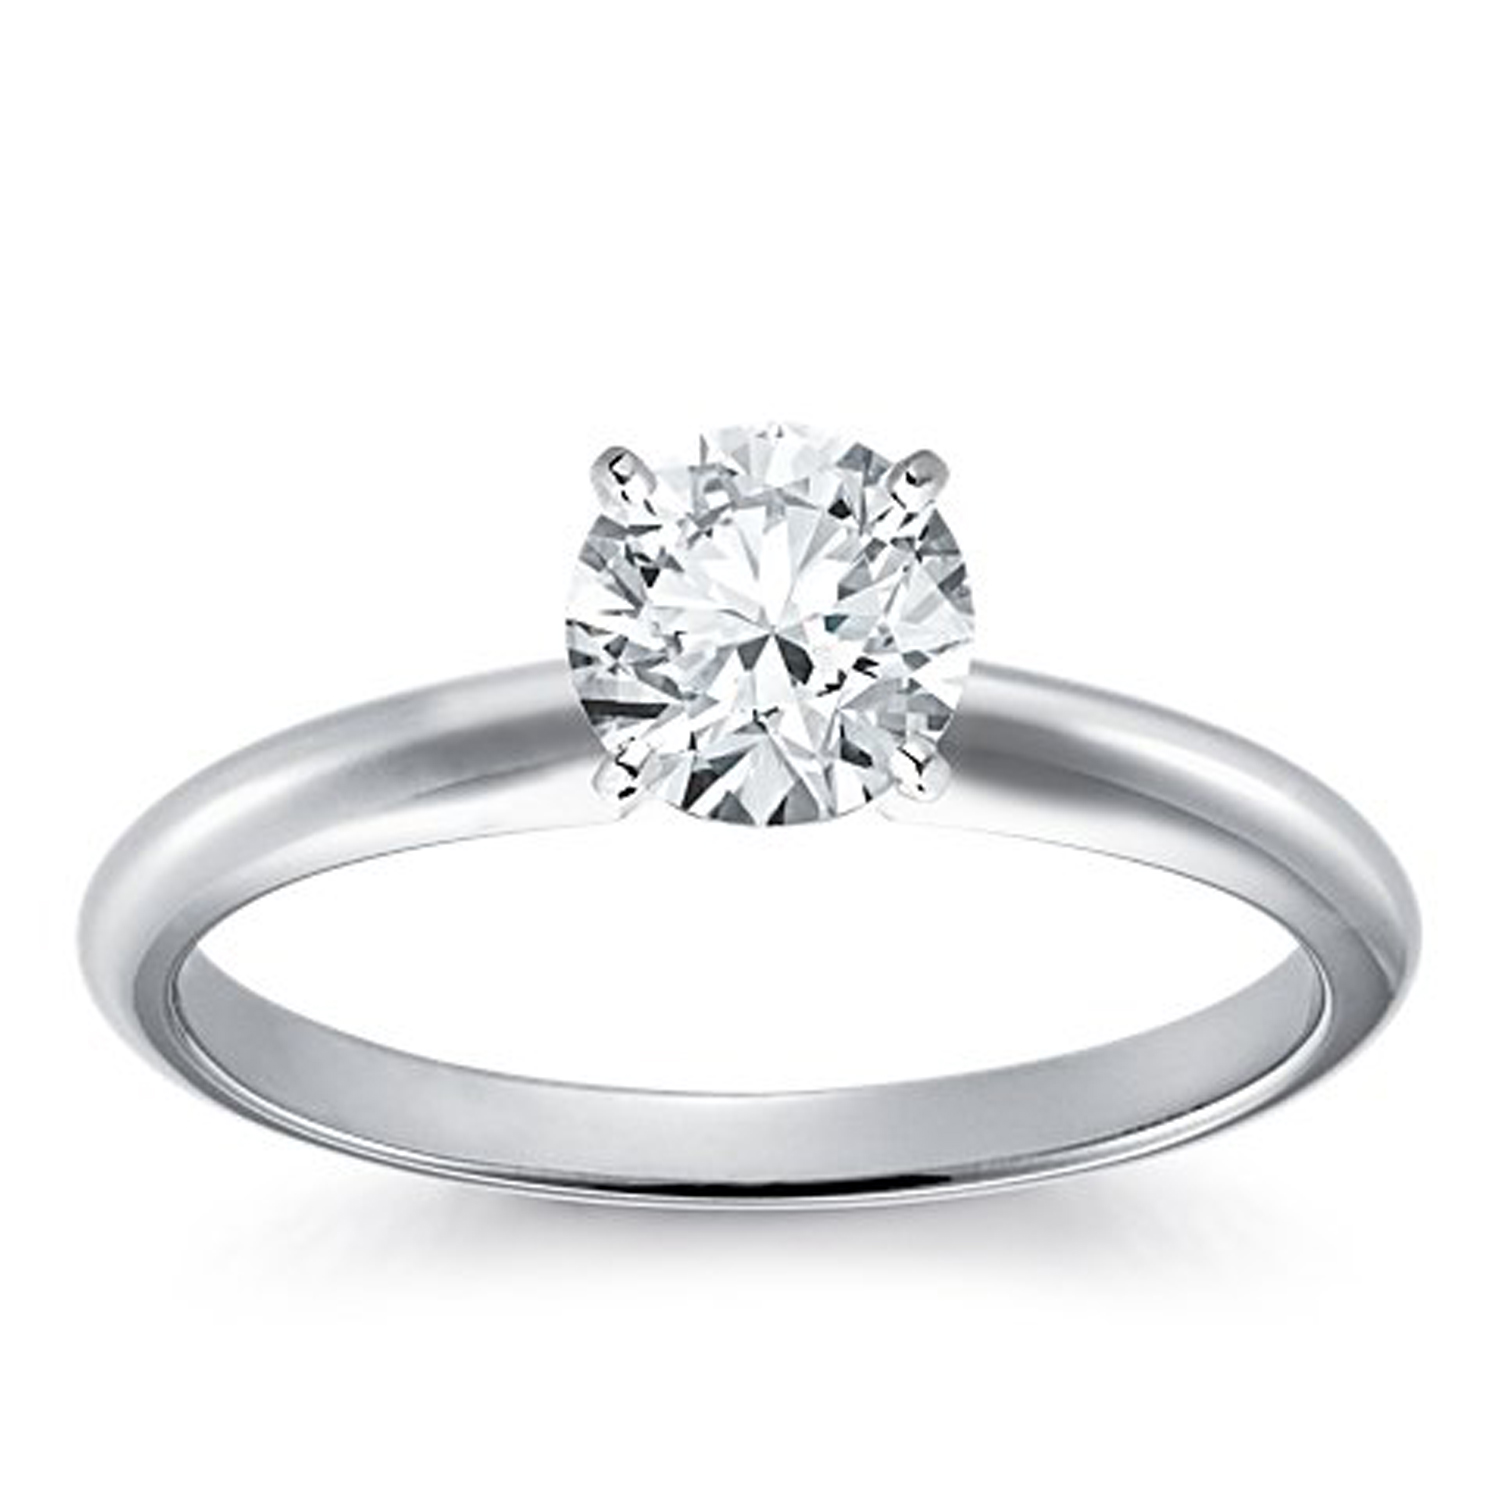 SOLITARE100 14K YG OR WG  1.0 CT DIAMOND SOLITAIRE RING I1  G TO H  IN COLOUR WITH CERTIFICATE